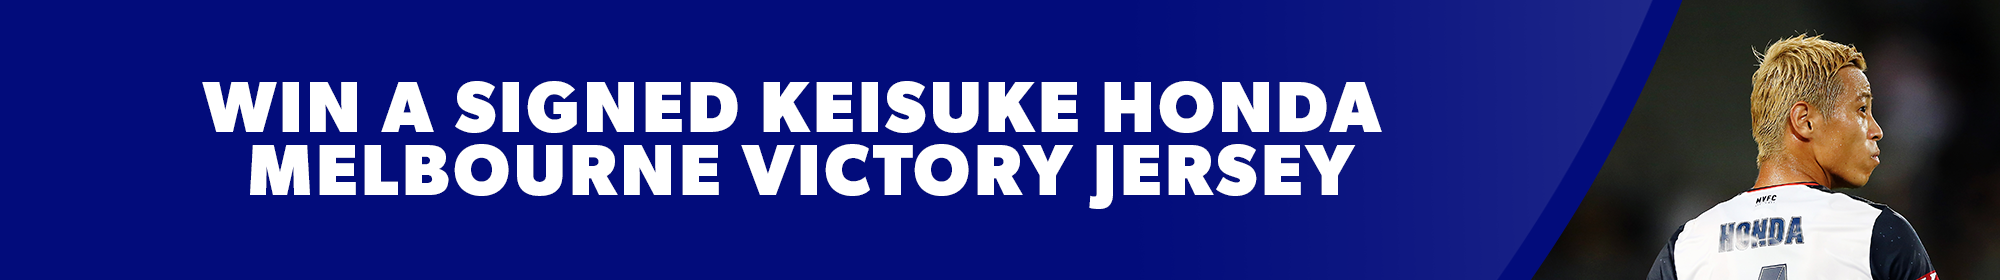 Win a signed Keisuke Honda Melbourne Victory Jersey